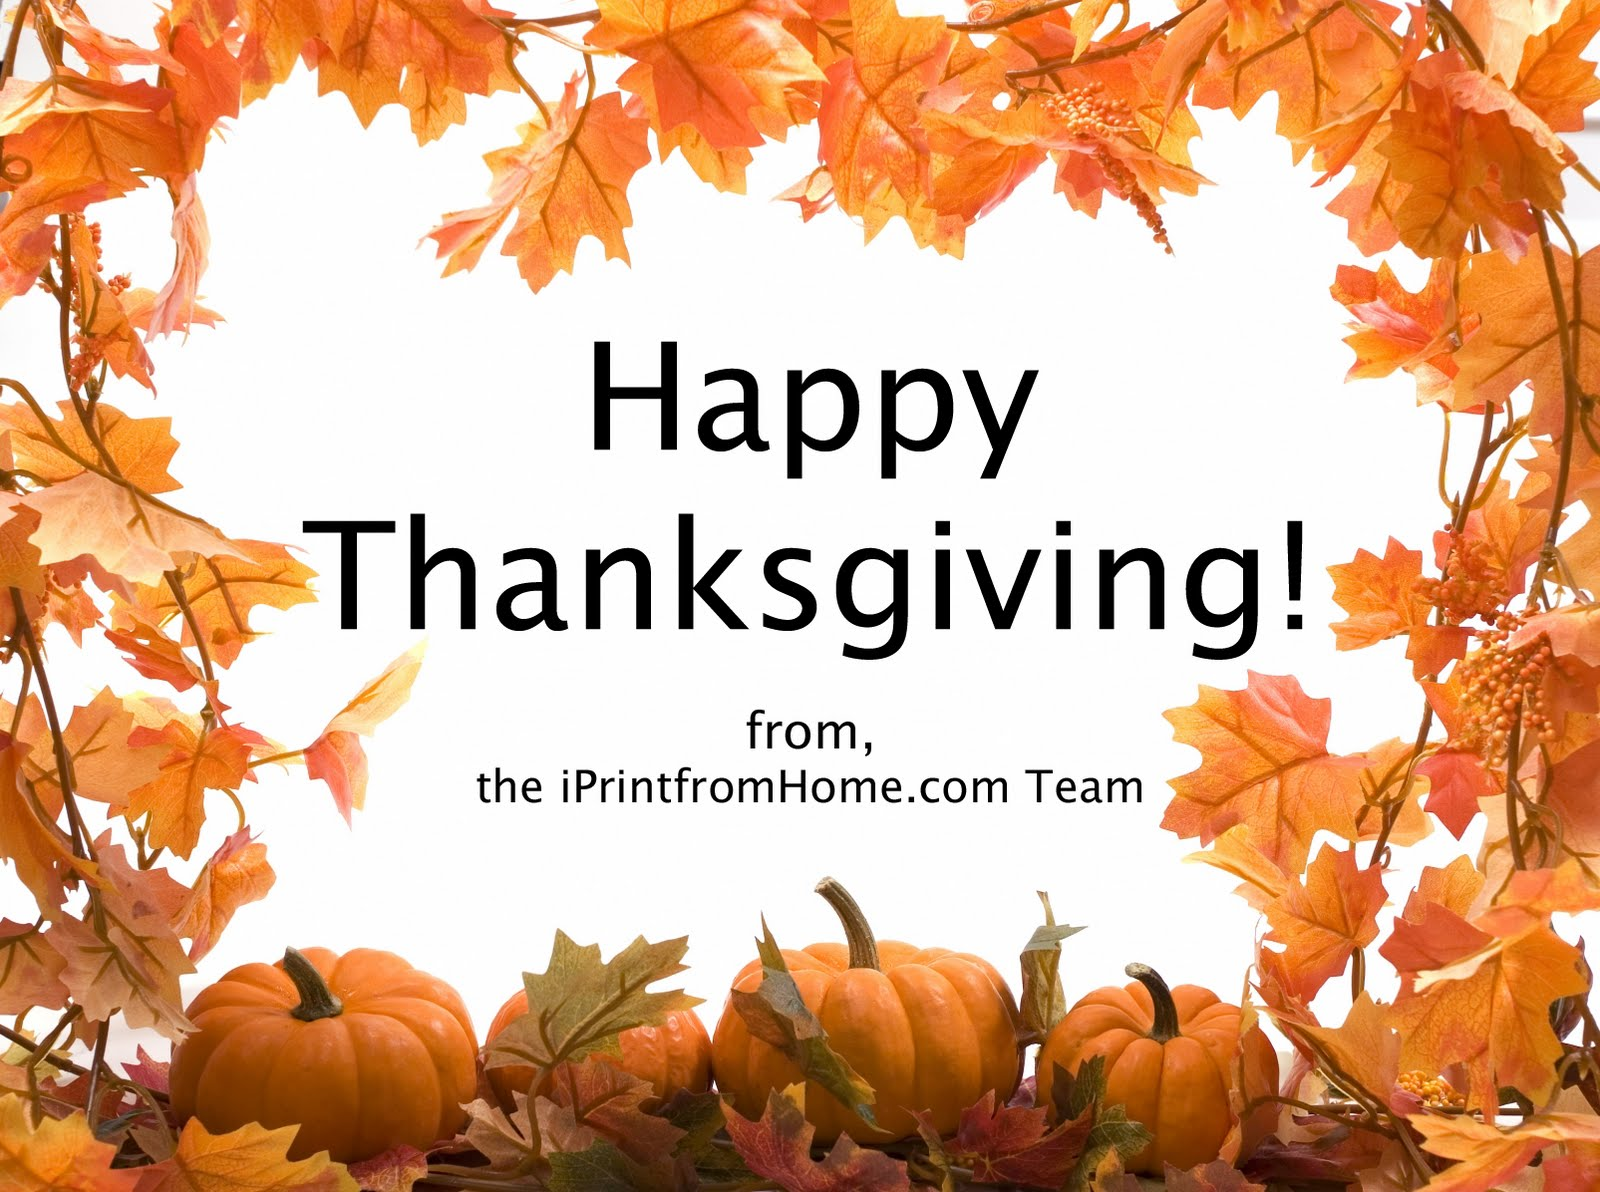 Happy Thanksgiving! : iPrintfromHome.com